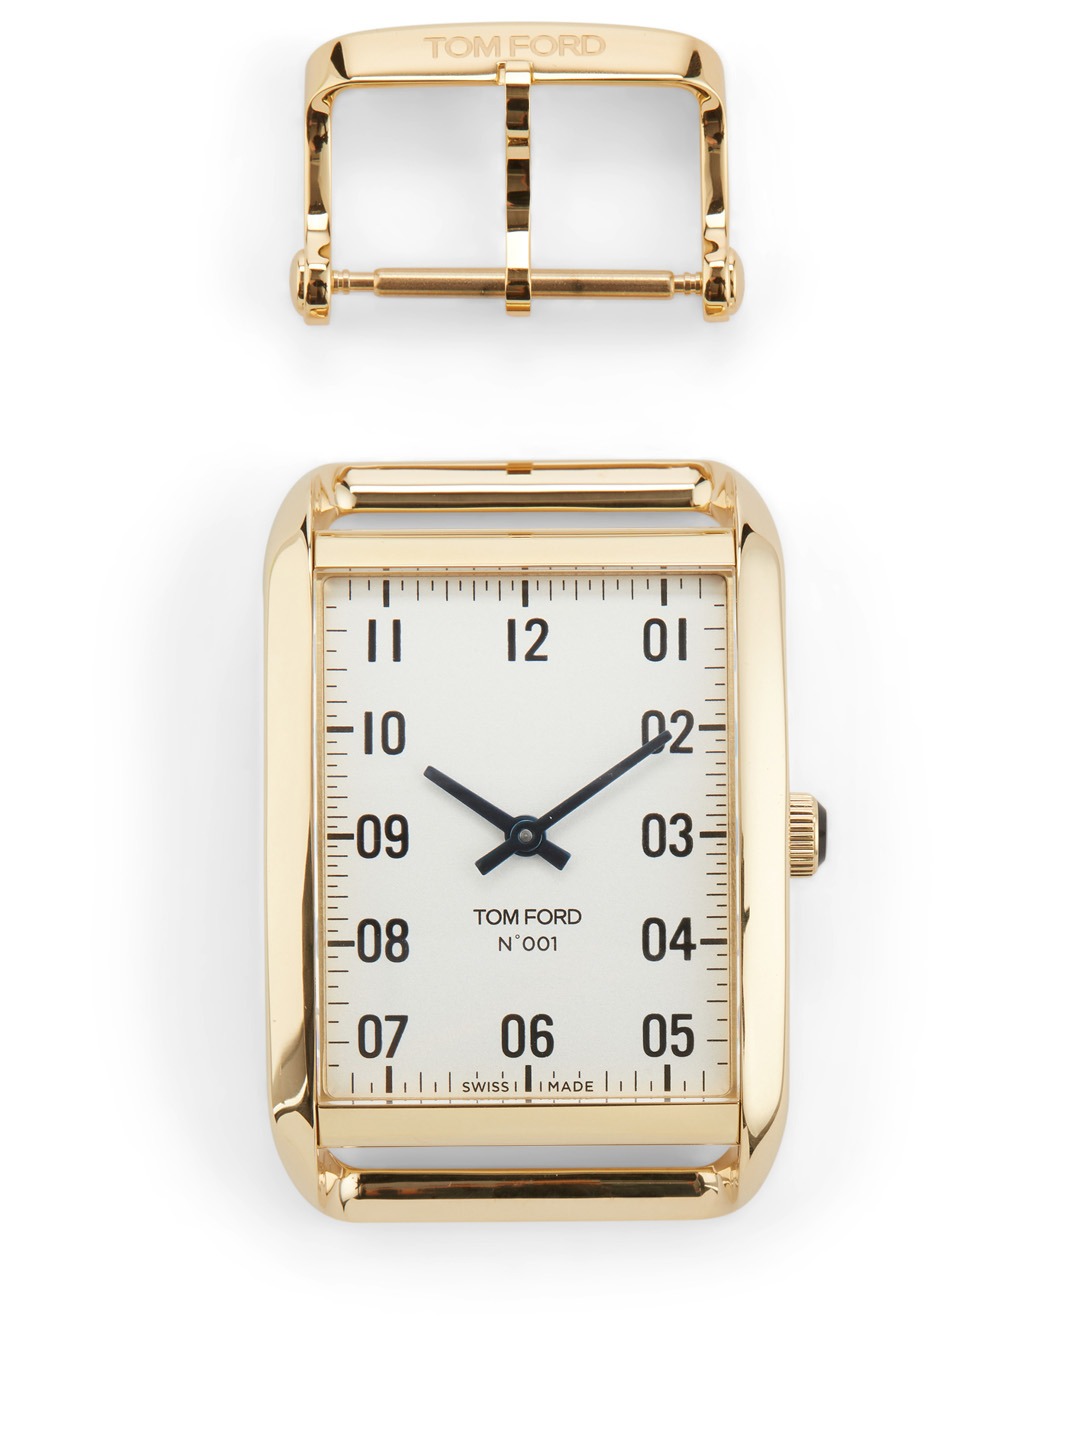 TOM FORD Large 001 Polished 18K Gold Watch Case With Buckle Womens Gold